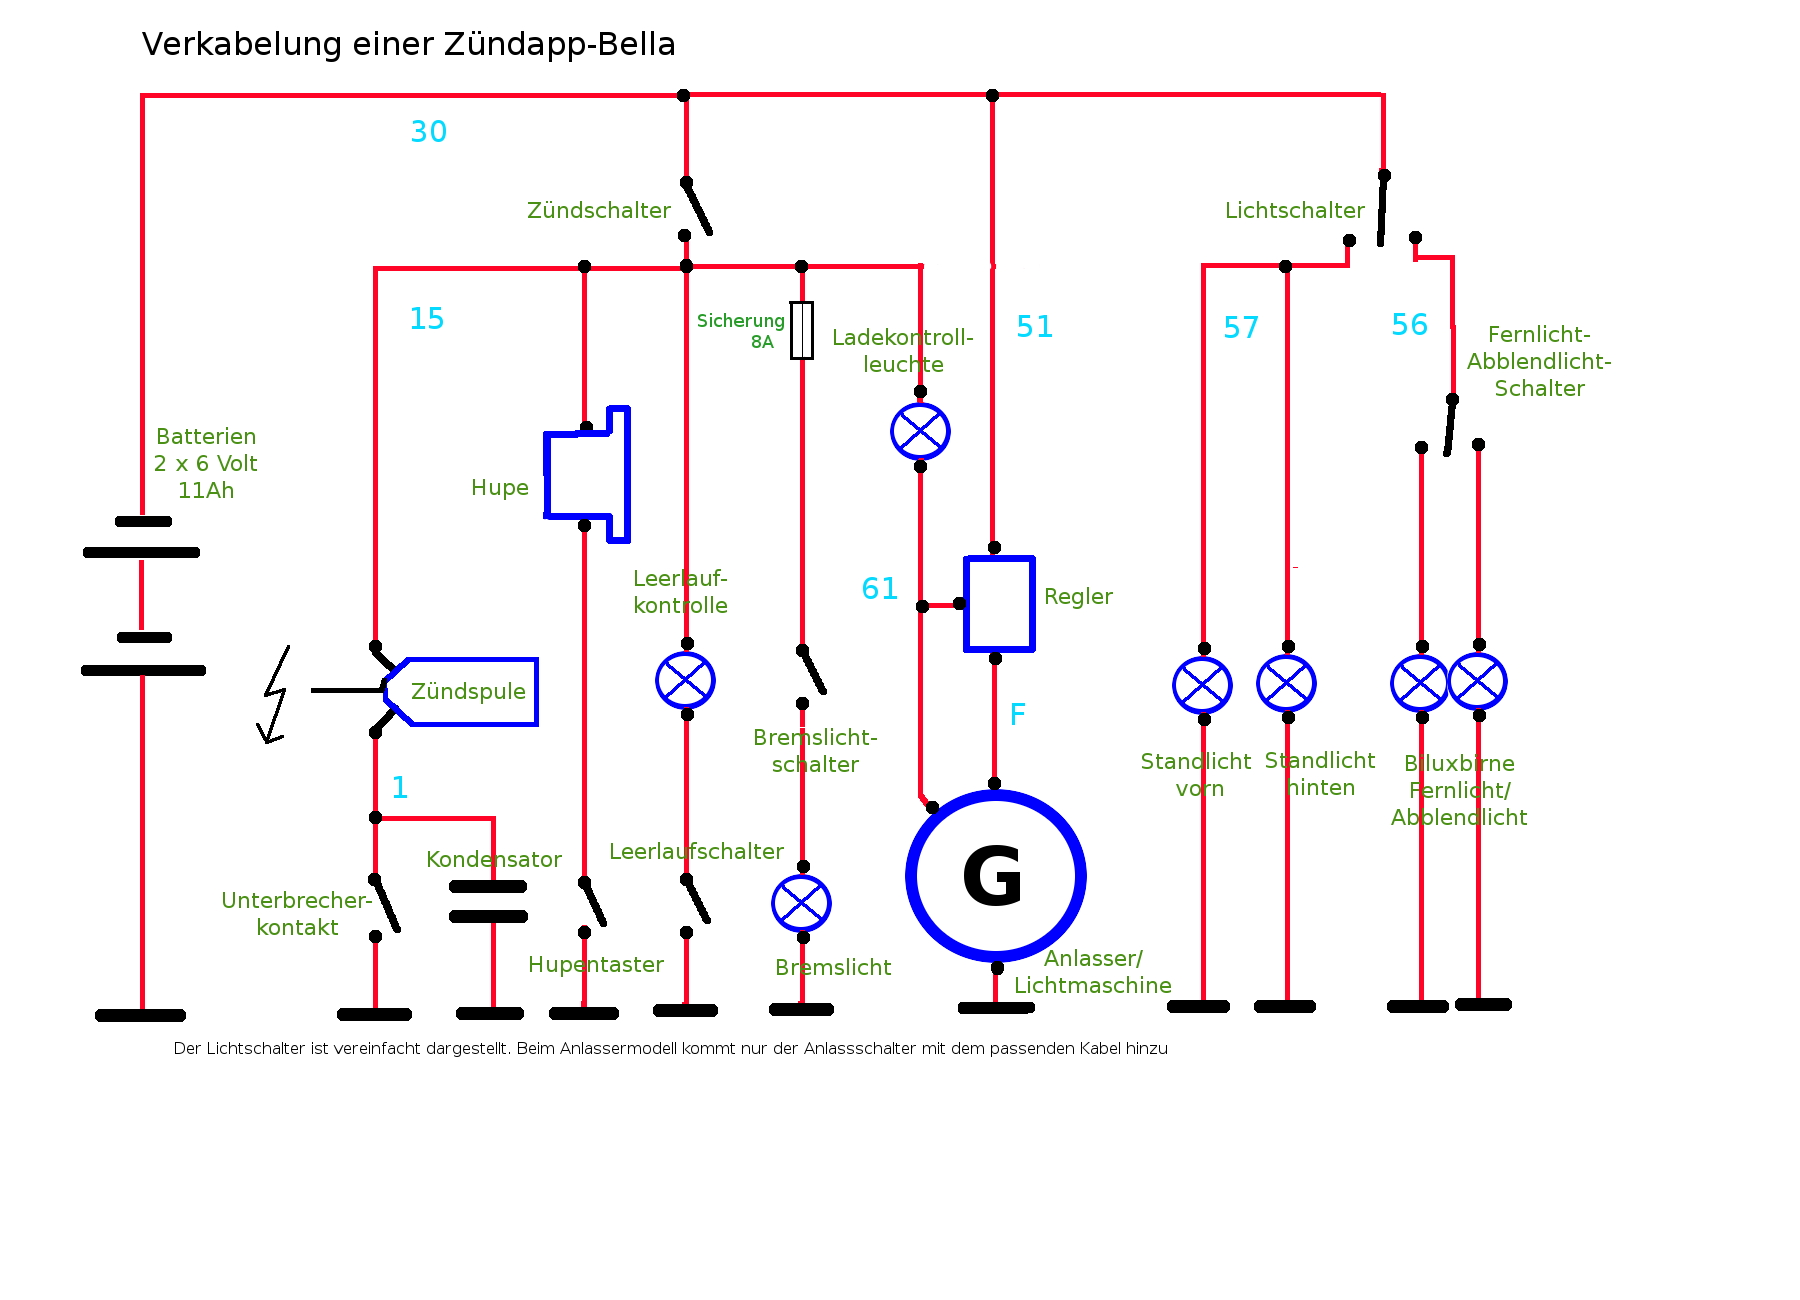 Generic Zundapp Bella Wiring Diagram source hartmut.homelinux.org_ generic electrical wiring diagrams building bella bosch dynastart wiring diagram at mr168.co